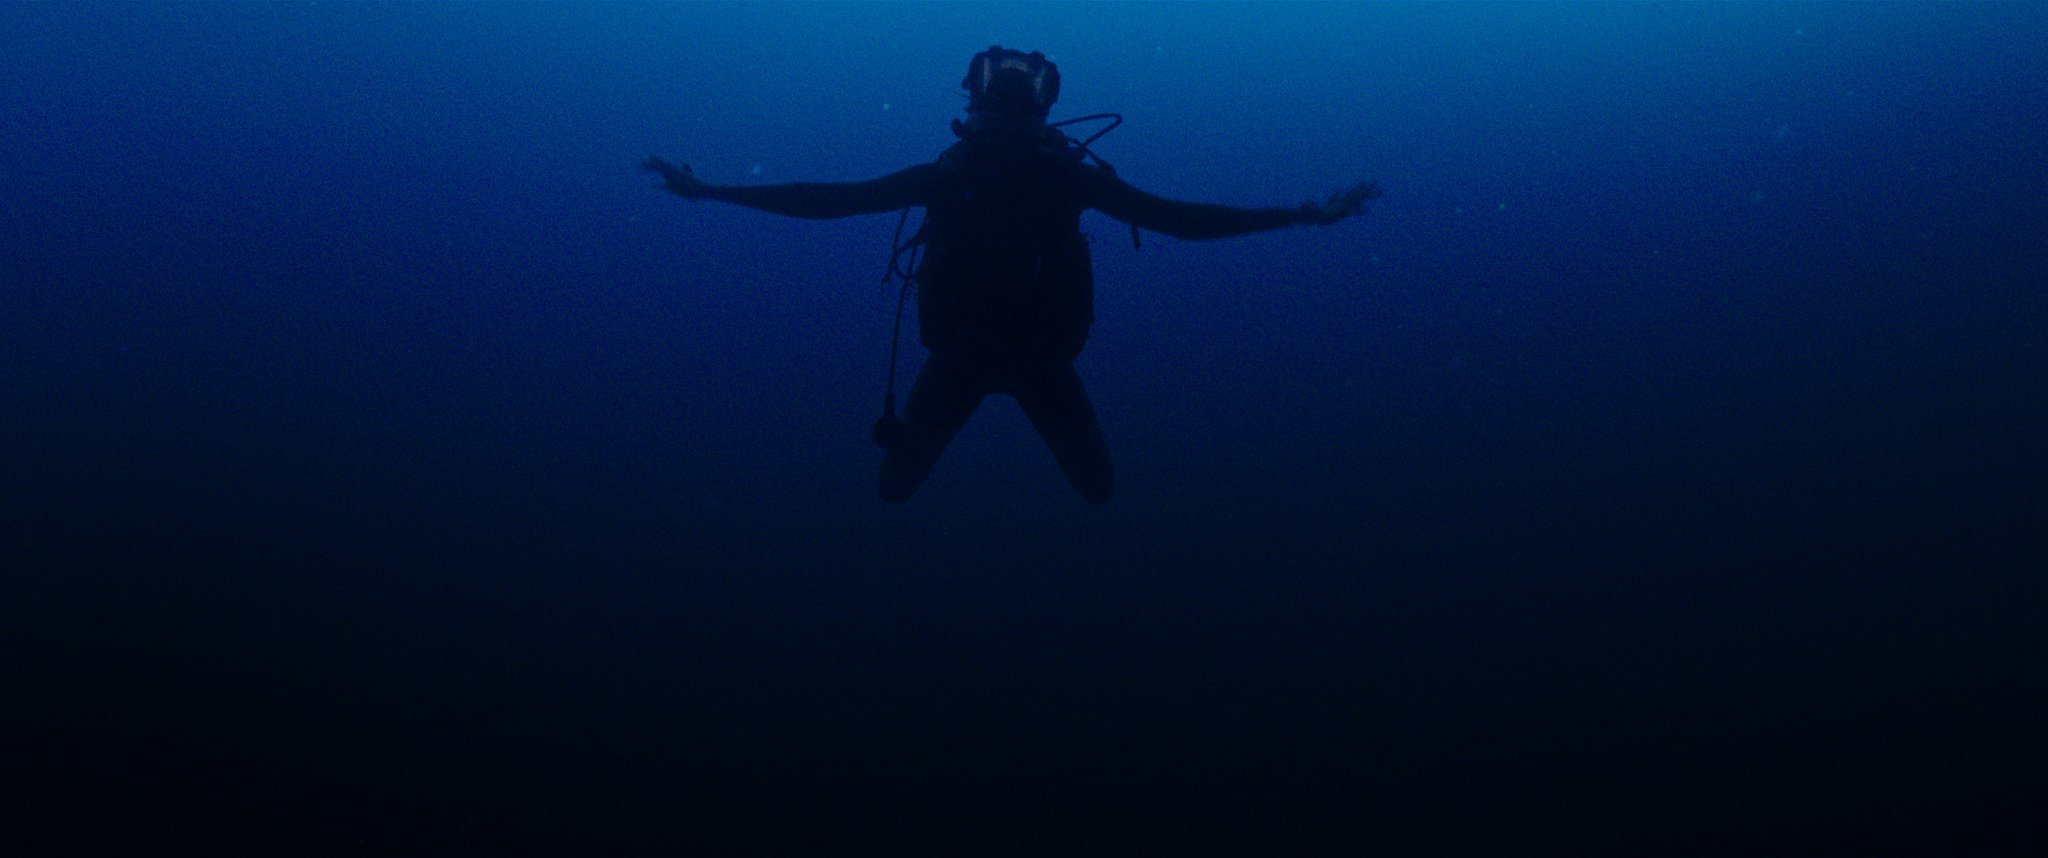 Photo du film 47 Meters Down en eaux profondes